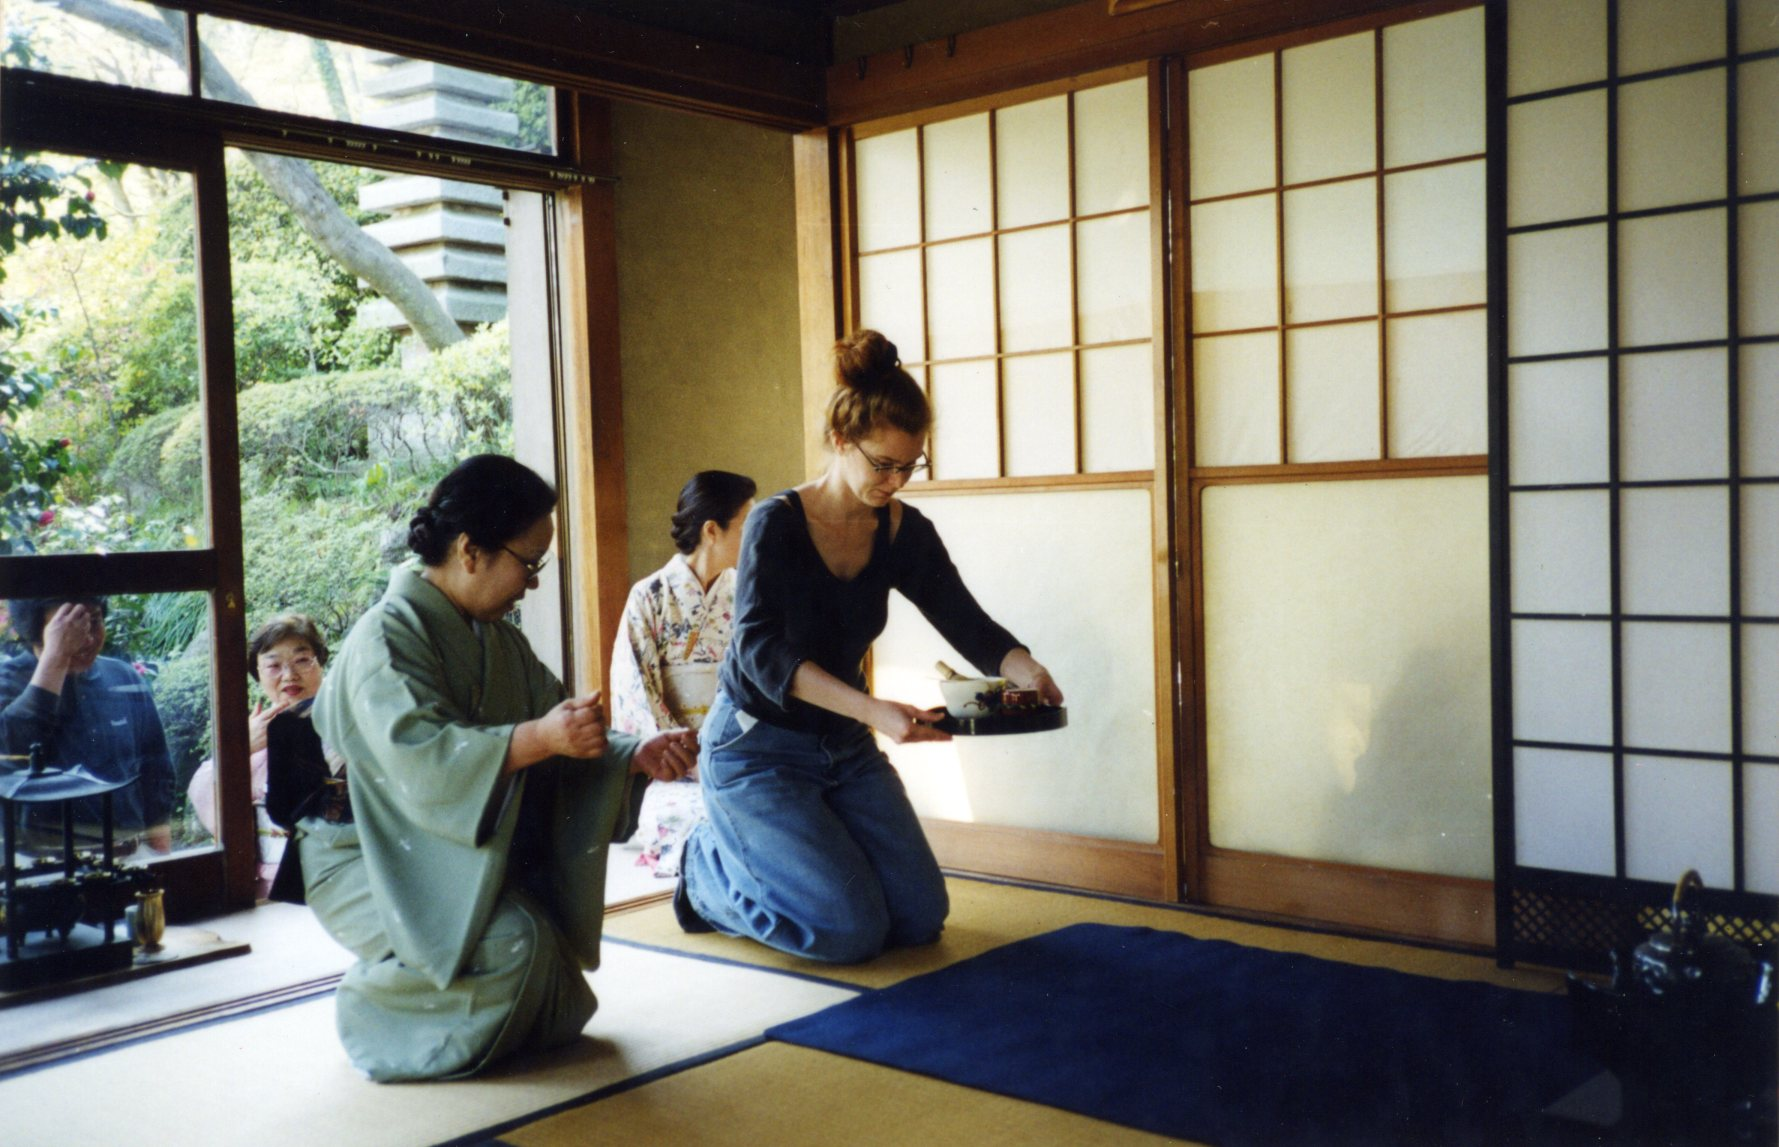 Ellis Avery at Tea Ceremony